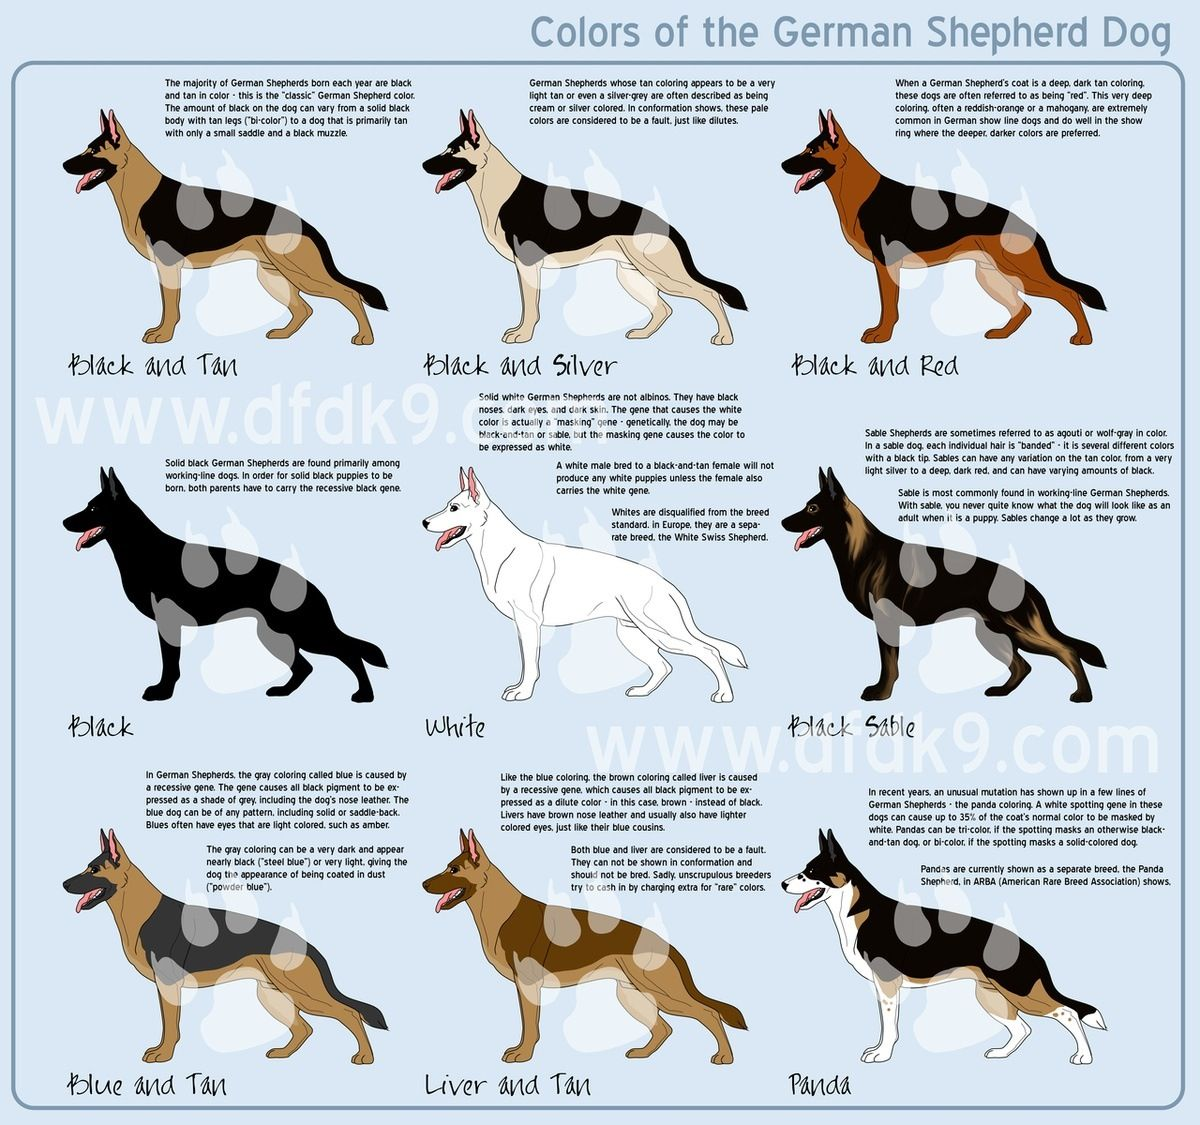 Pin By Alaina Klaiss On Animals German Shepherd Colors German